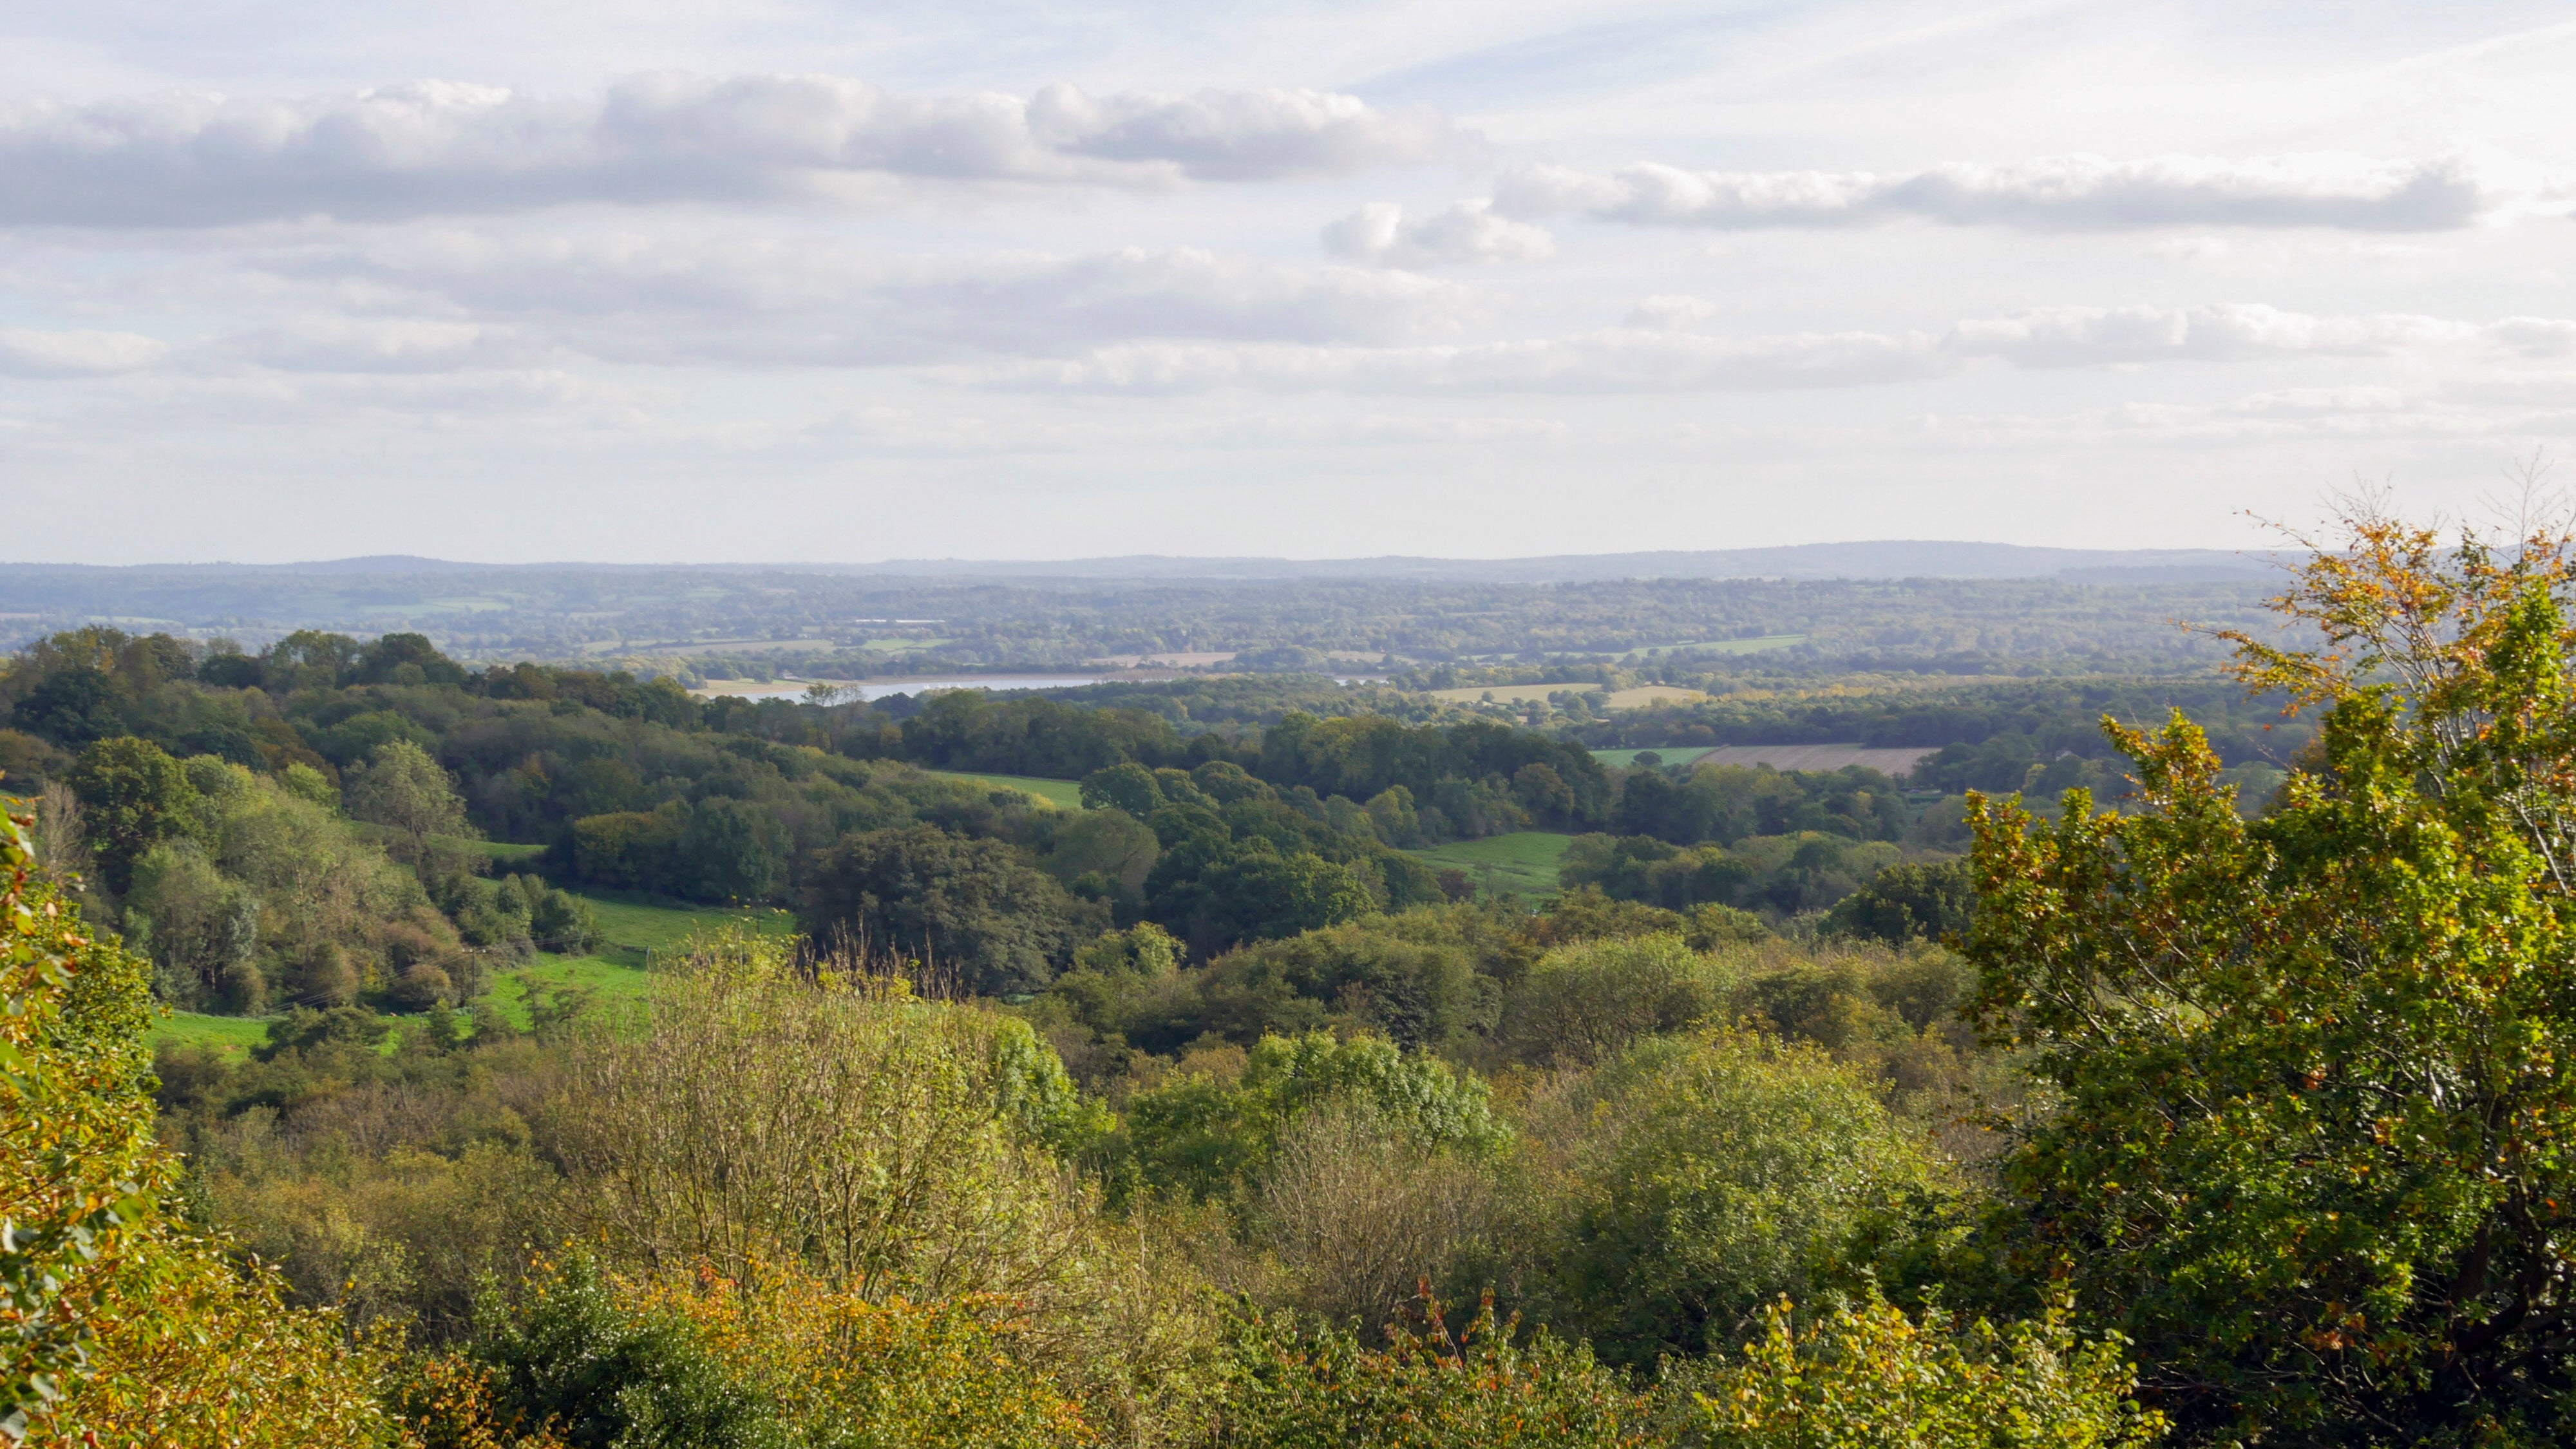 A view over the Weald of Kent from Emmetts Garden, a National Trust place in Kent